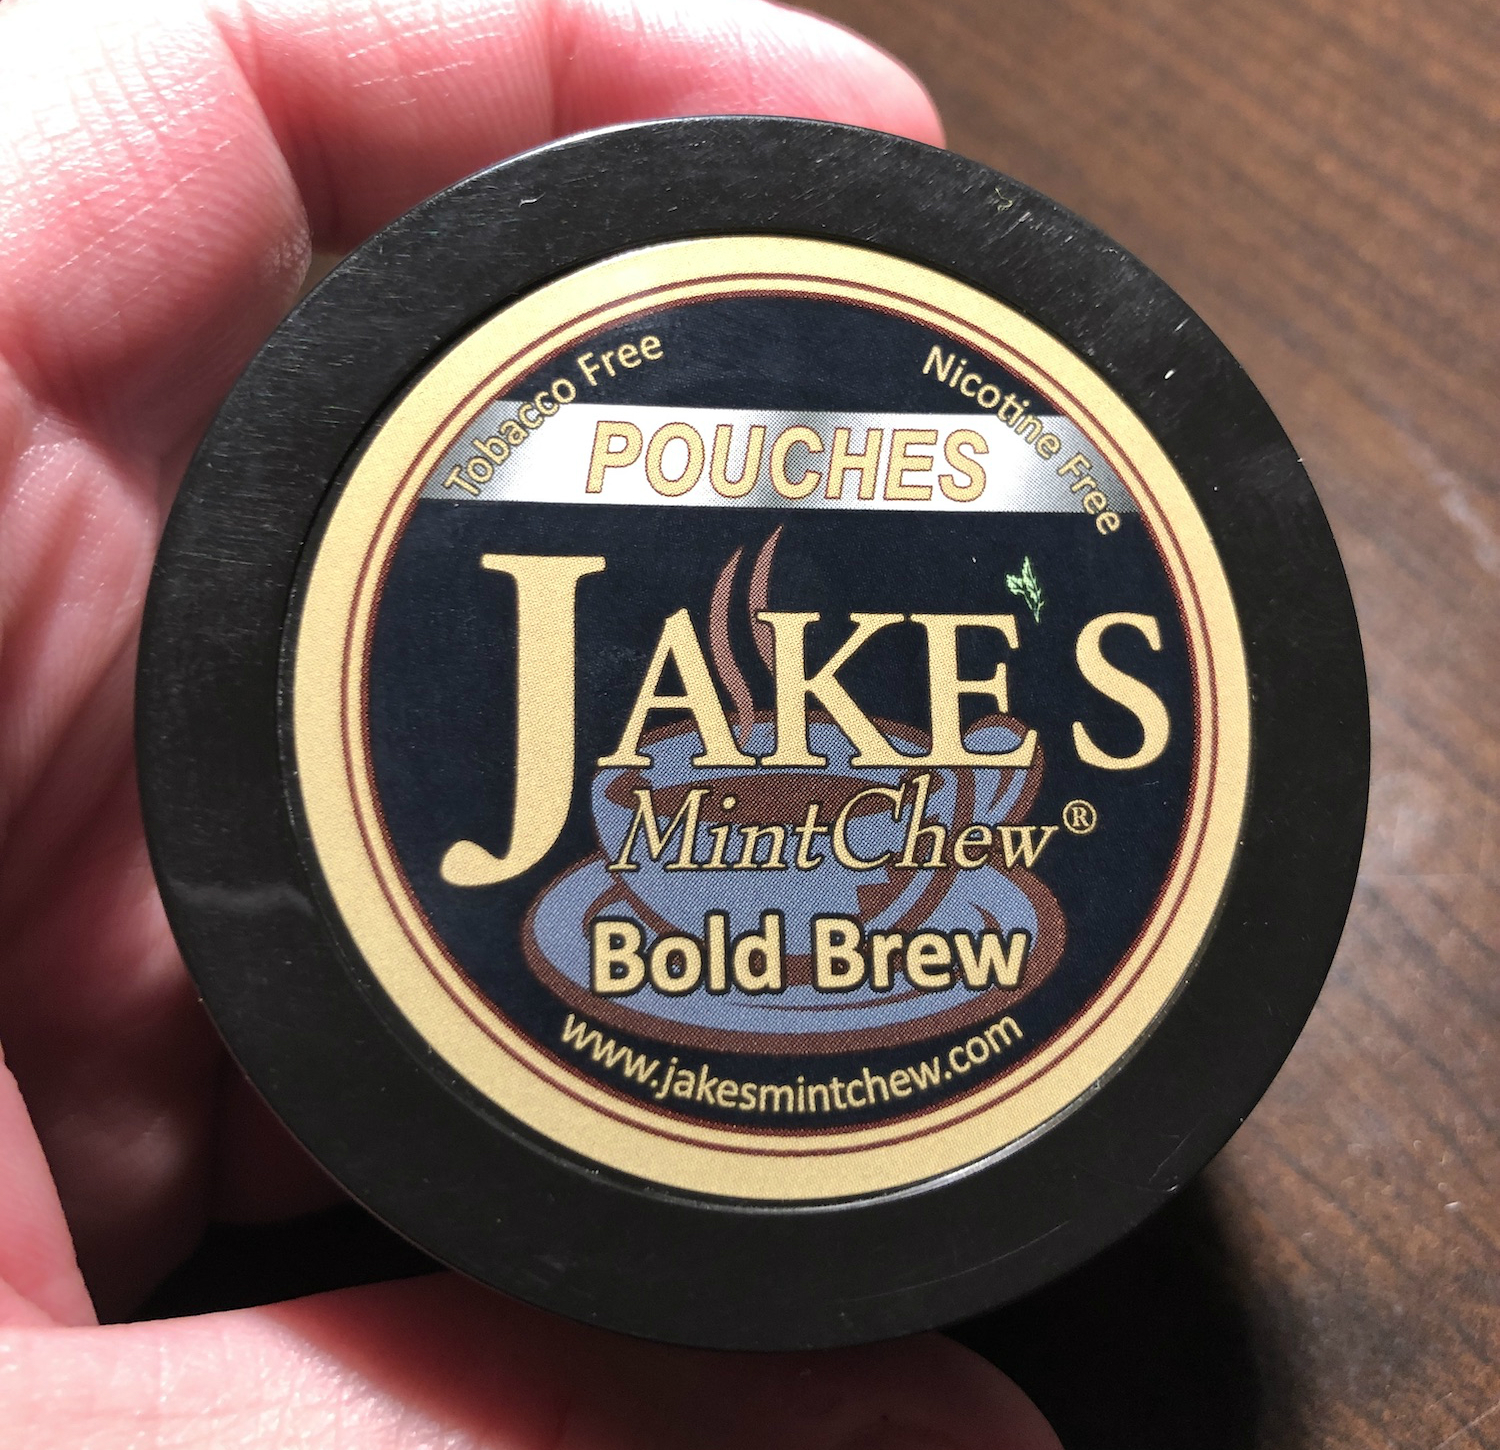 Photo of Jake's Mint Chew Bold Brew Pouches Review